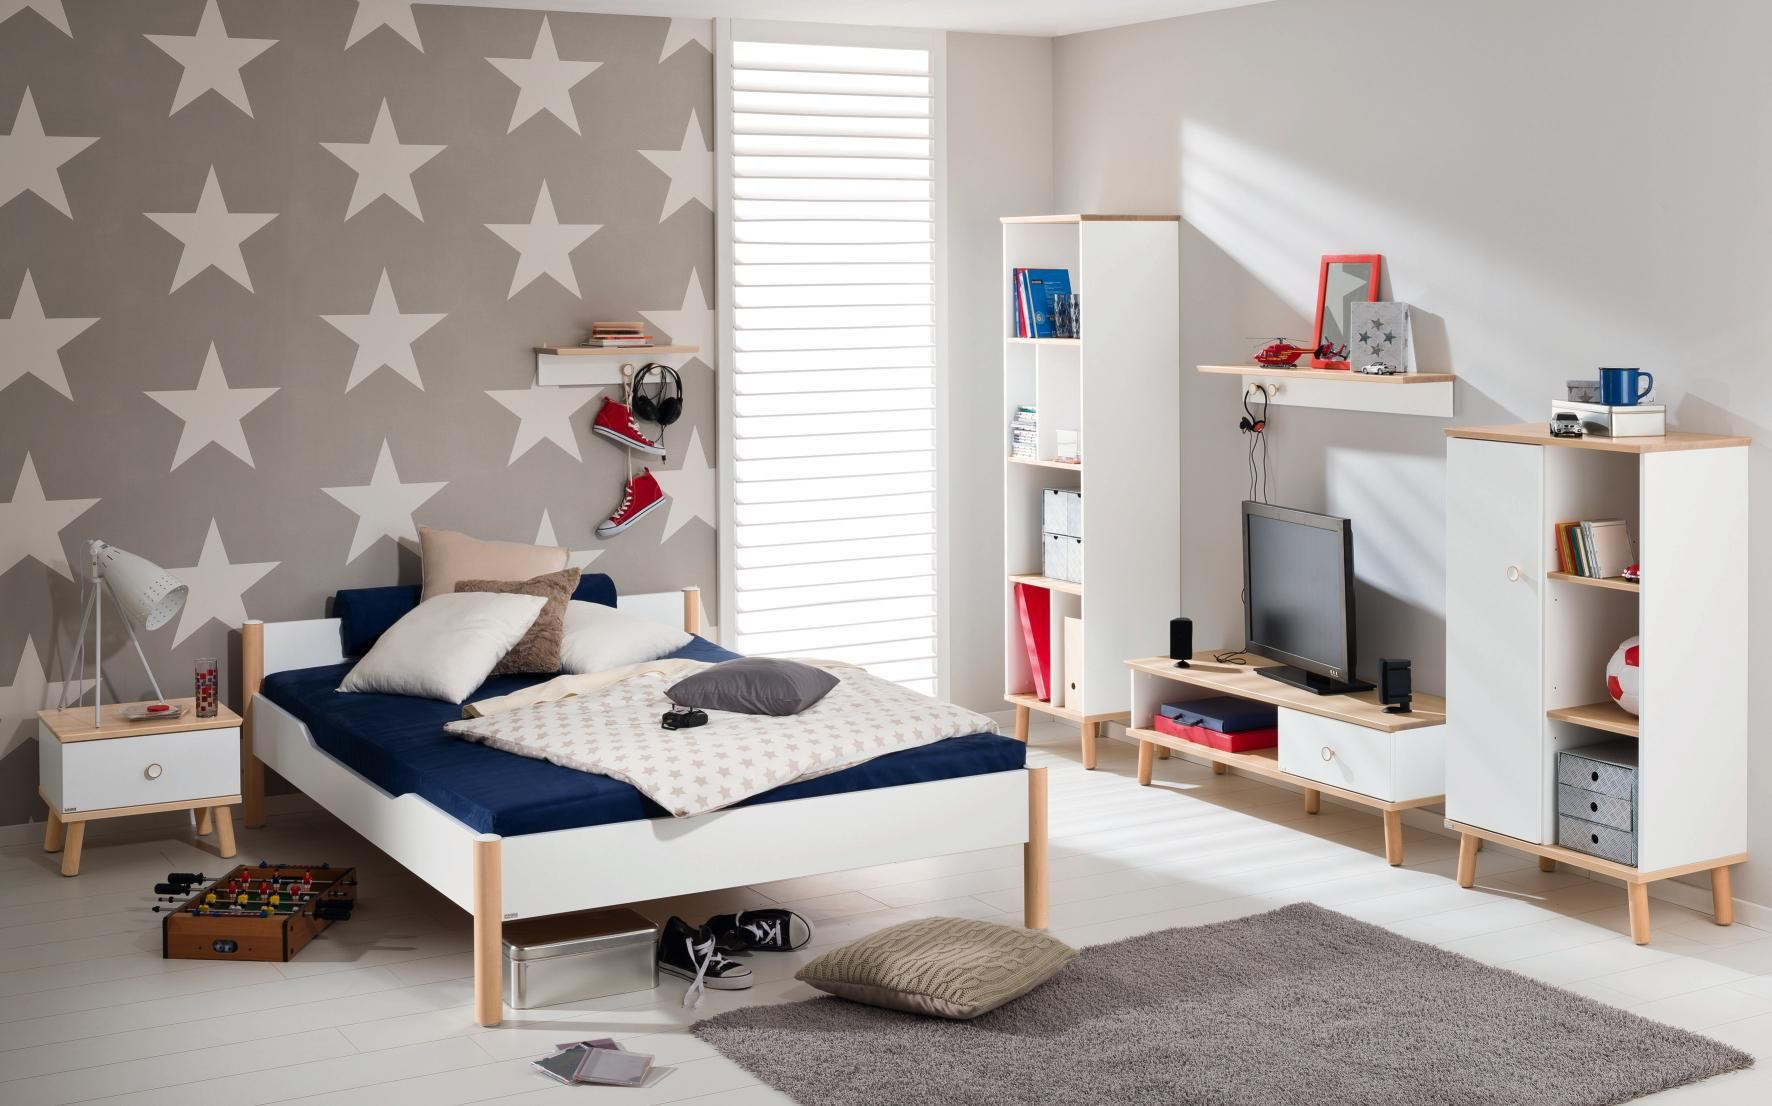 paidi jugendzimmer kinder und jugendzimmer pinterest jugendzimmer und kind. Black Bedroom Furniture Sets. Home Design Ideas